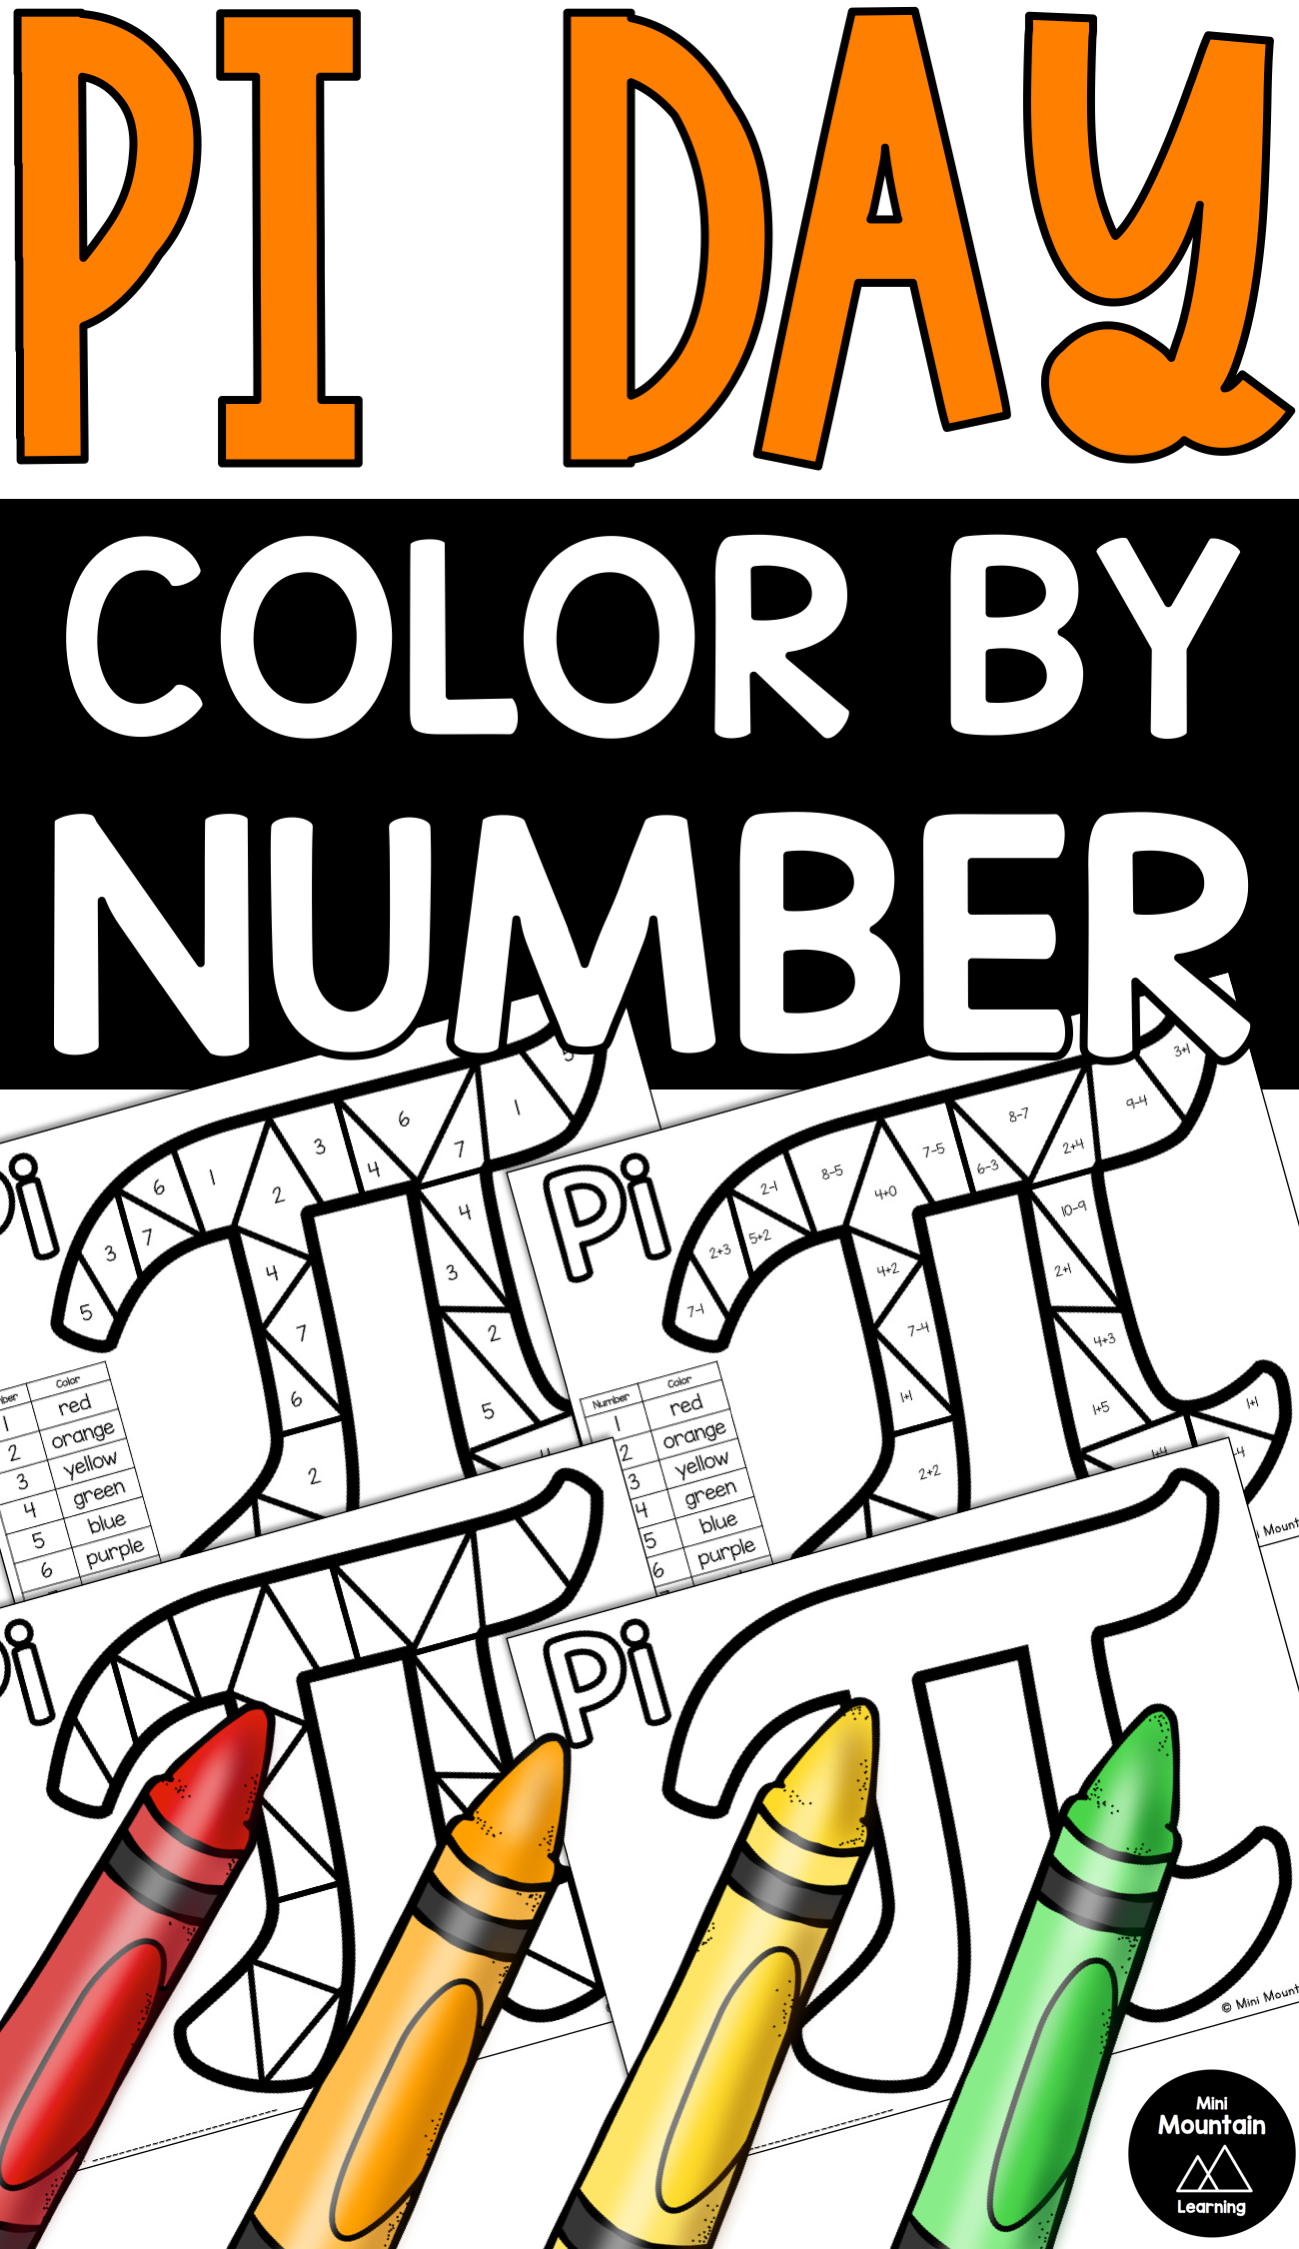 Color These Pi Day Coloring Pages For Pi Day In Your Class Pidayactivity Pida Fathers Day Coloring Page Valentines Day Coloring Page New Year Coloring Pages [ 2249 x 1299 Pixel ]